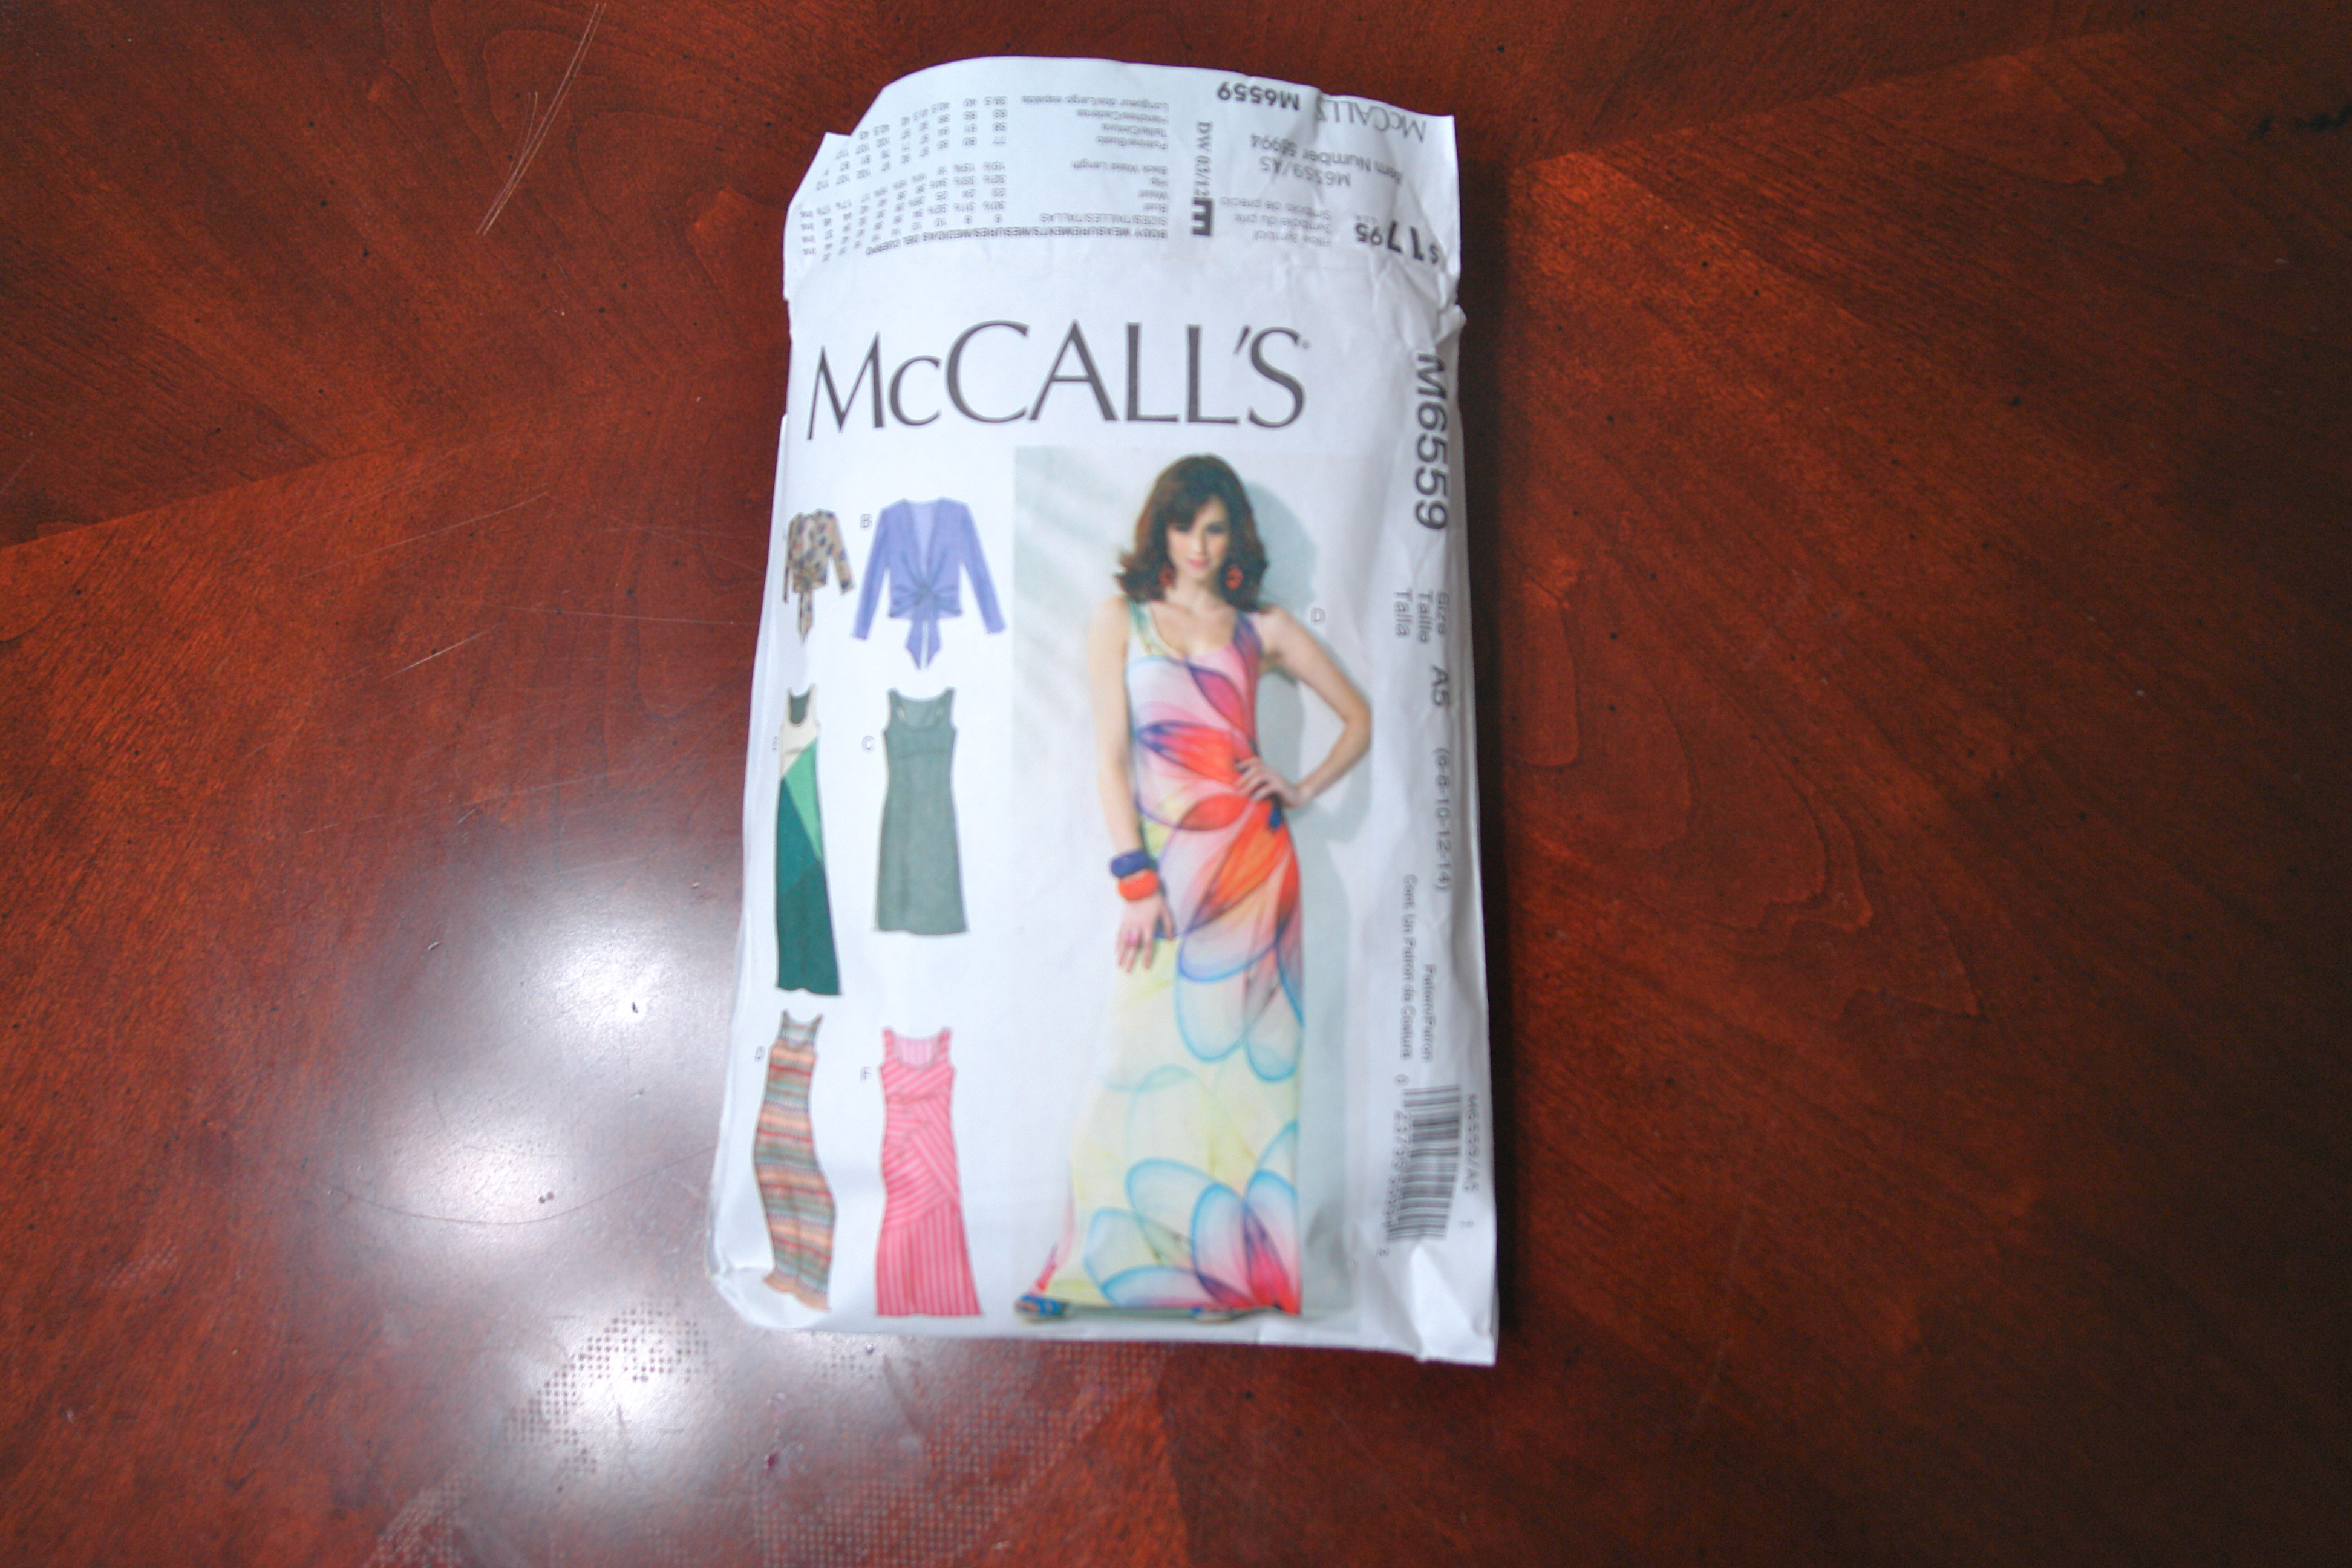 Pretty Tall Style - McCalls 6559 - DIY Maxi Dress